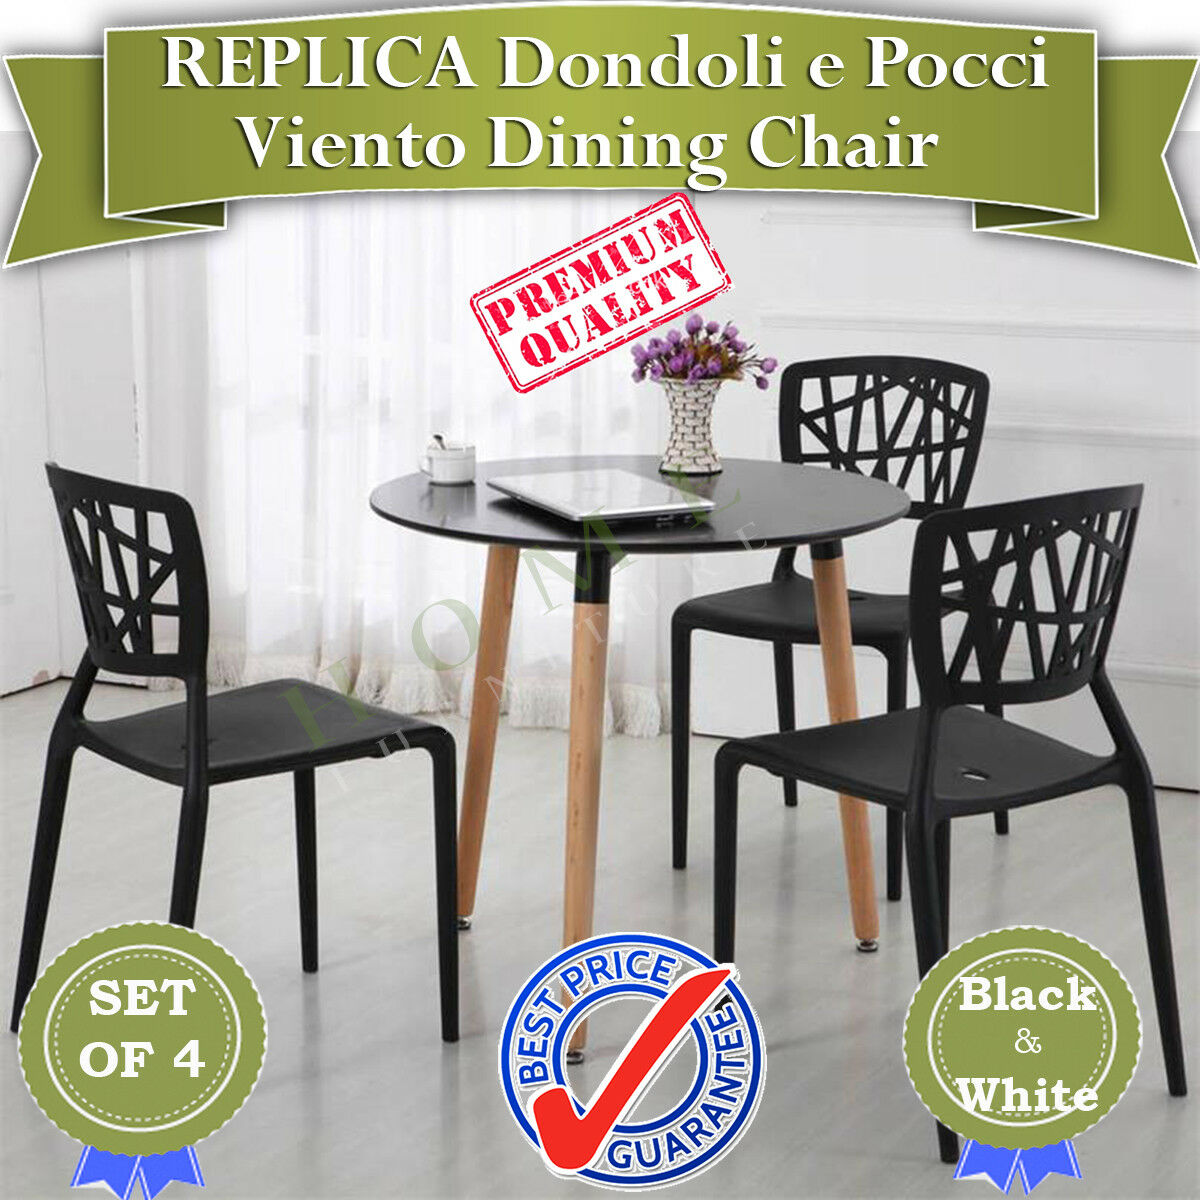 Surprising Details About Brand New Set Of 4 Replica Dondoli E Pocci Viento Black And White Dining Chair Gmtry Best Dining Table And Chair Ideas Images Gmtryco